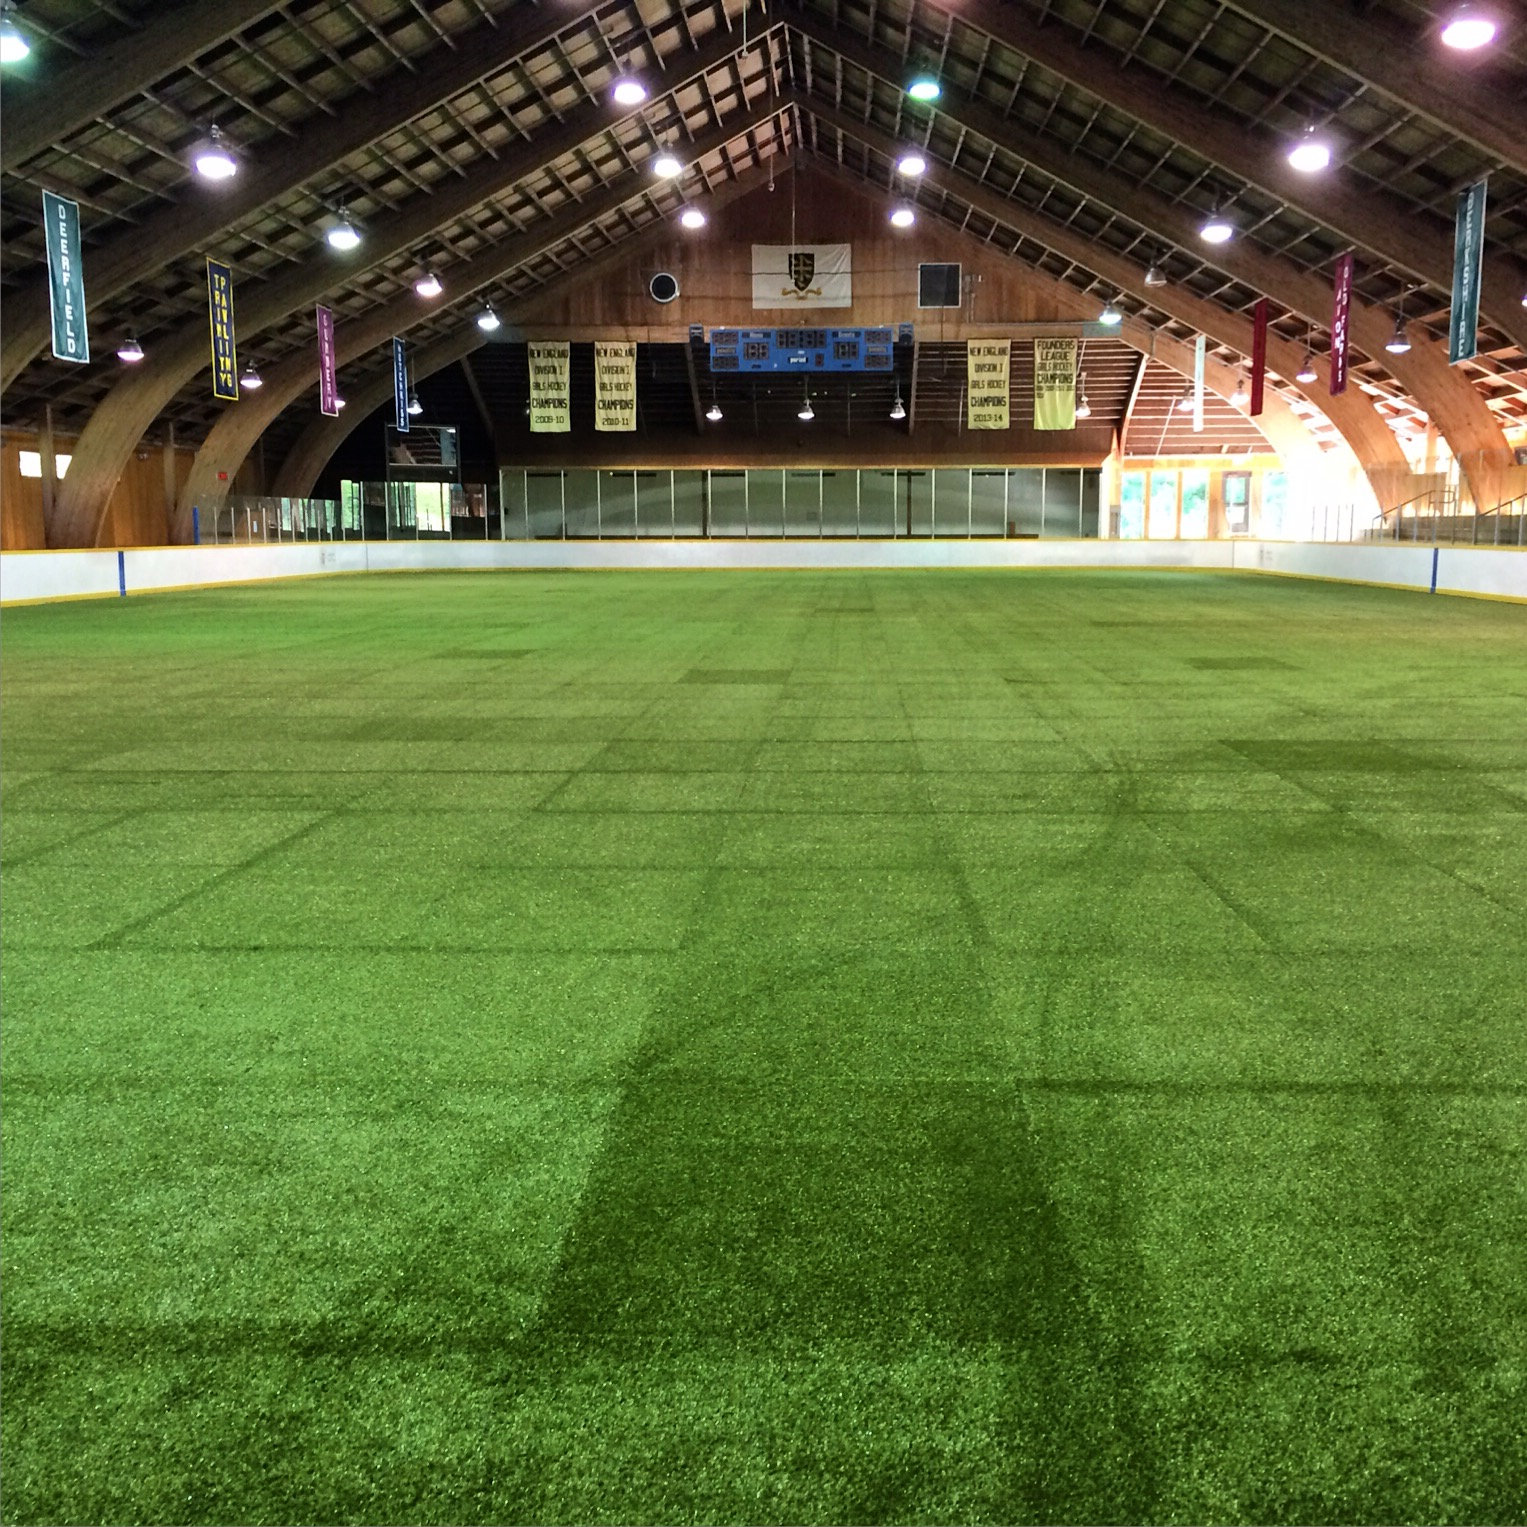 Indoor / Box Training Facility Features NHL sized hockey rink with brand new turf flooring to create a professional indoor lacrosse experience